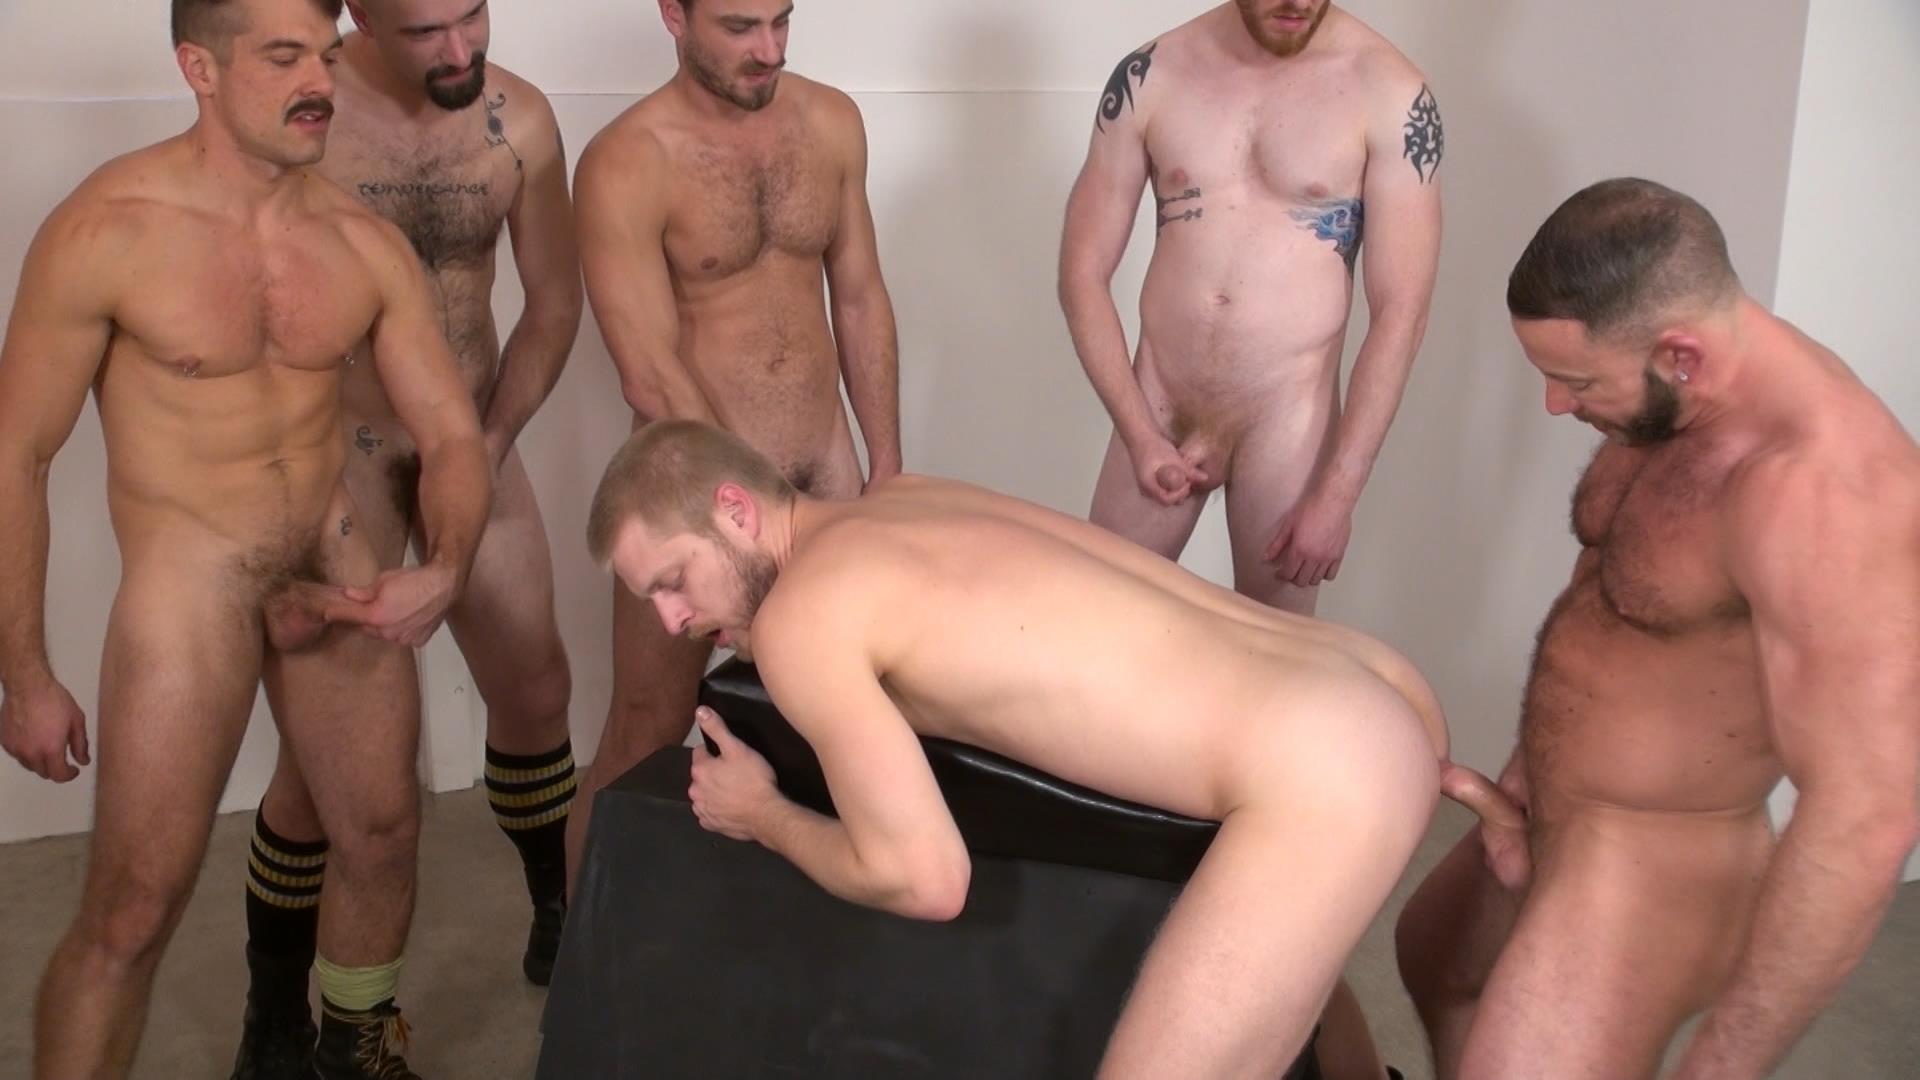 Raw and Rough Bareback Gay Sex Orgy Amateur Gay Porn 05 Six Hairy Hung Guys Pounding A Bottom At A Bareback Sex Party